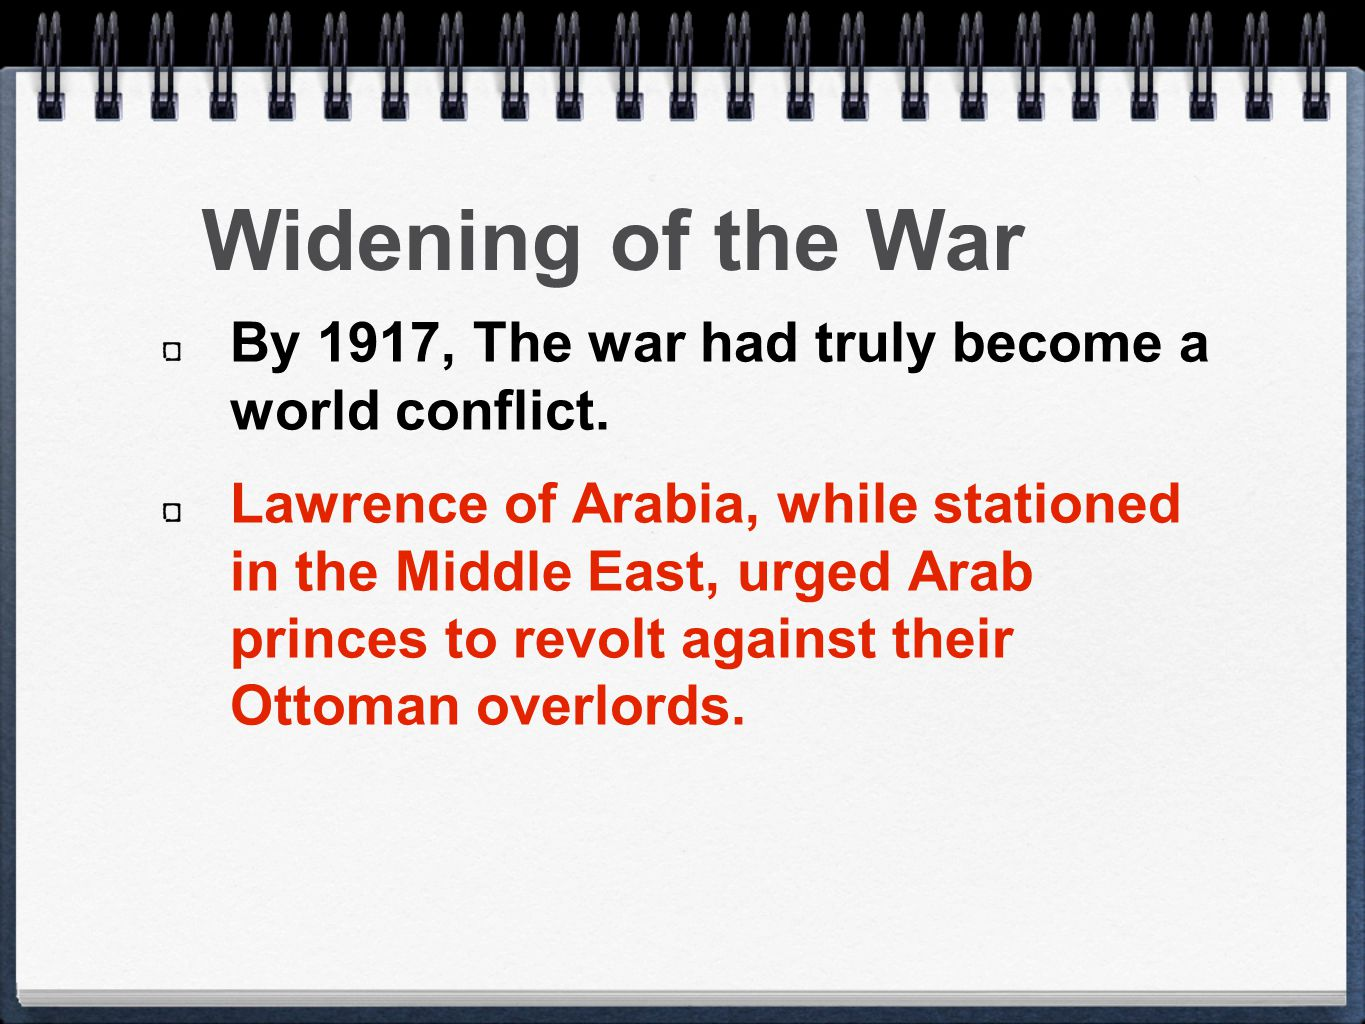 By 1917, The war had truly become a world conflict.